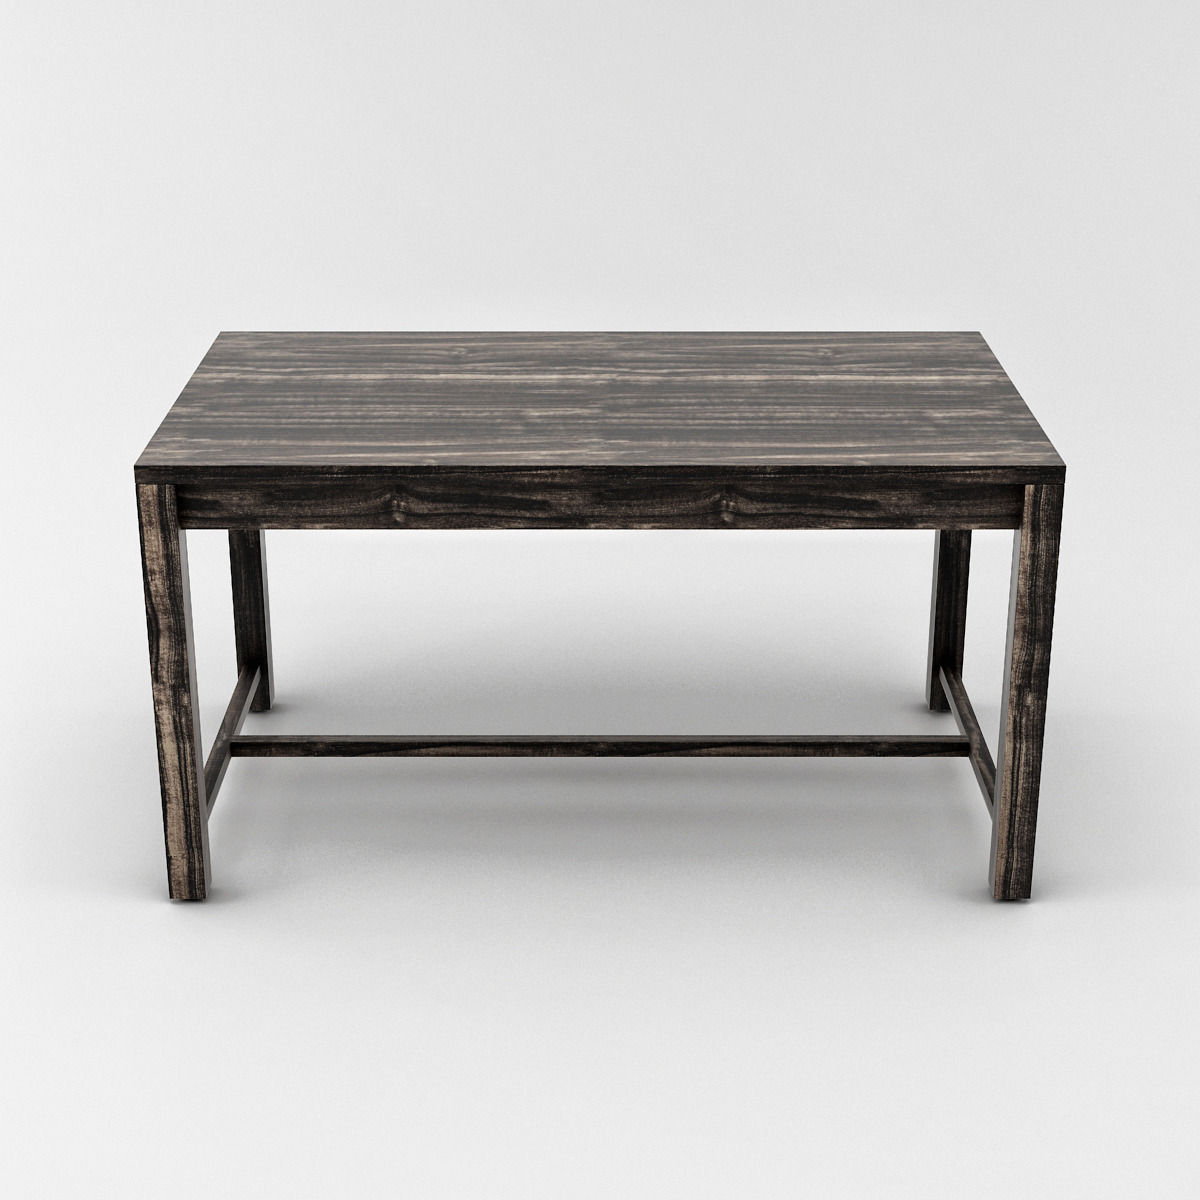 Marvelous photograph of Dark Wooden Office Table 3D Model .max .obj .3ds .fbx CGTrader.com with #675B50 color and 1200x1200 pixels